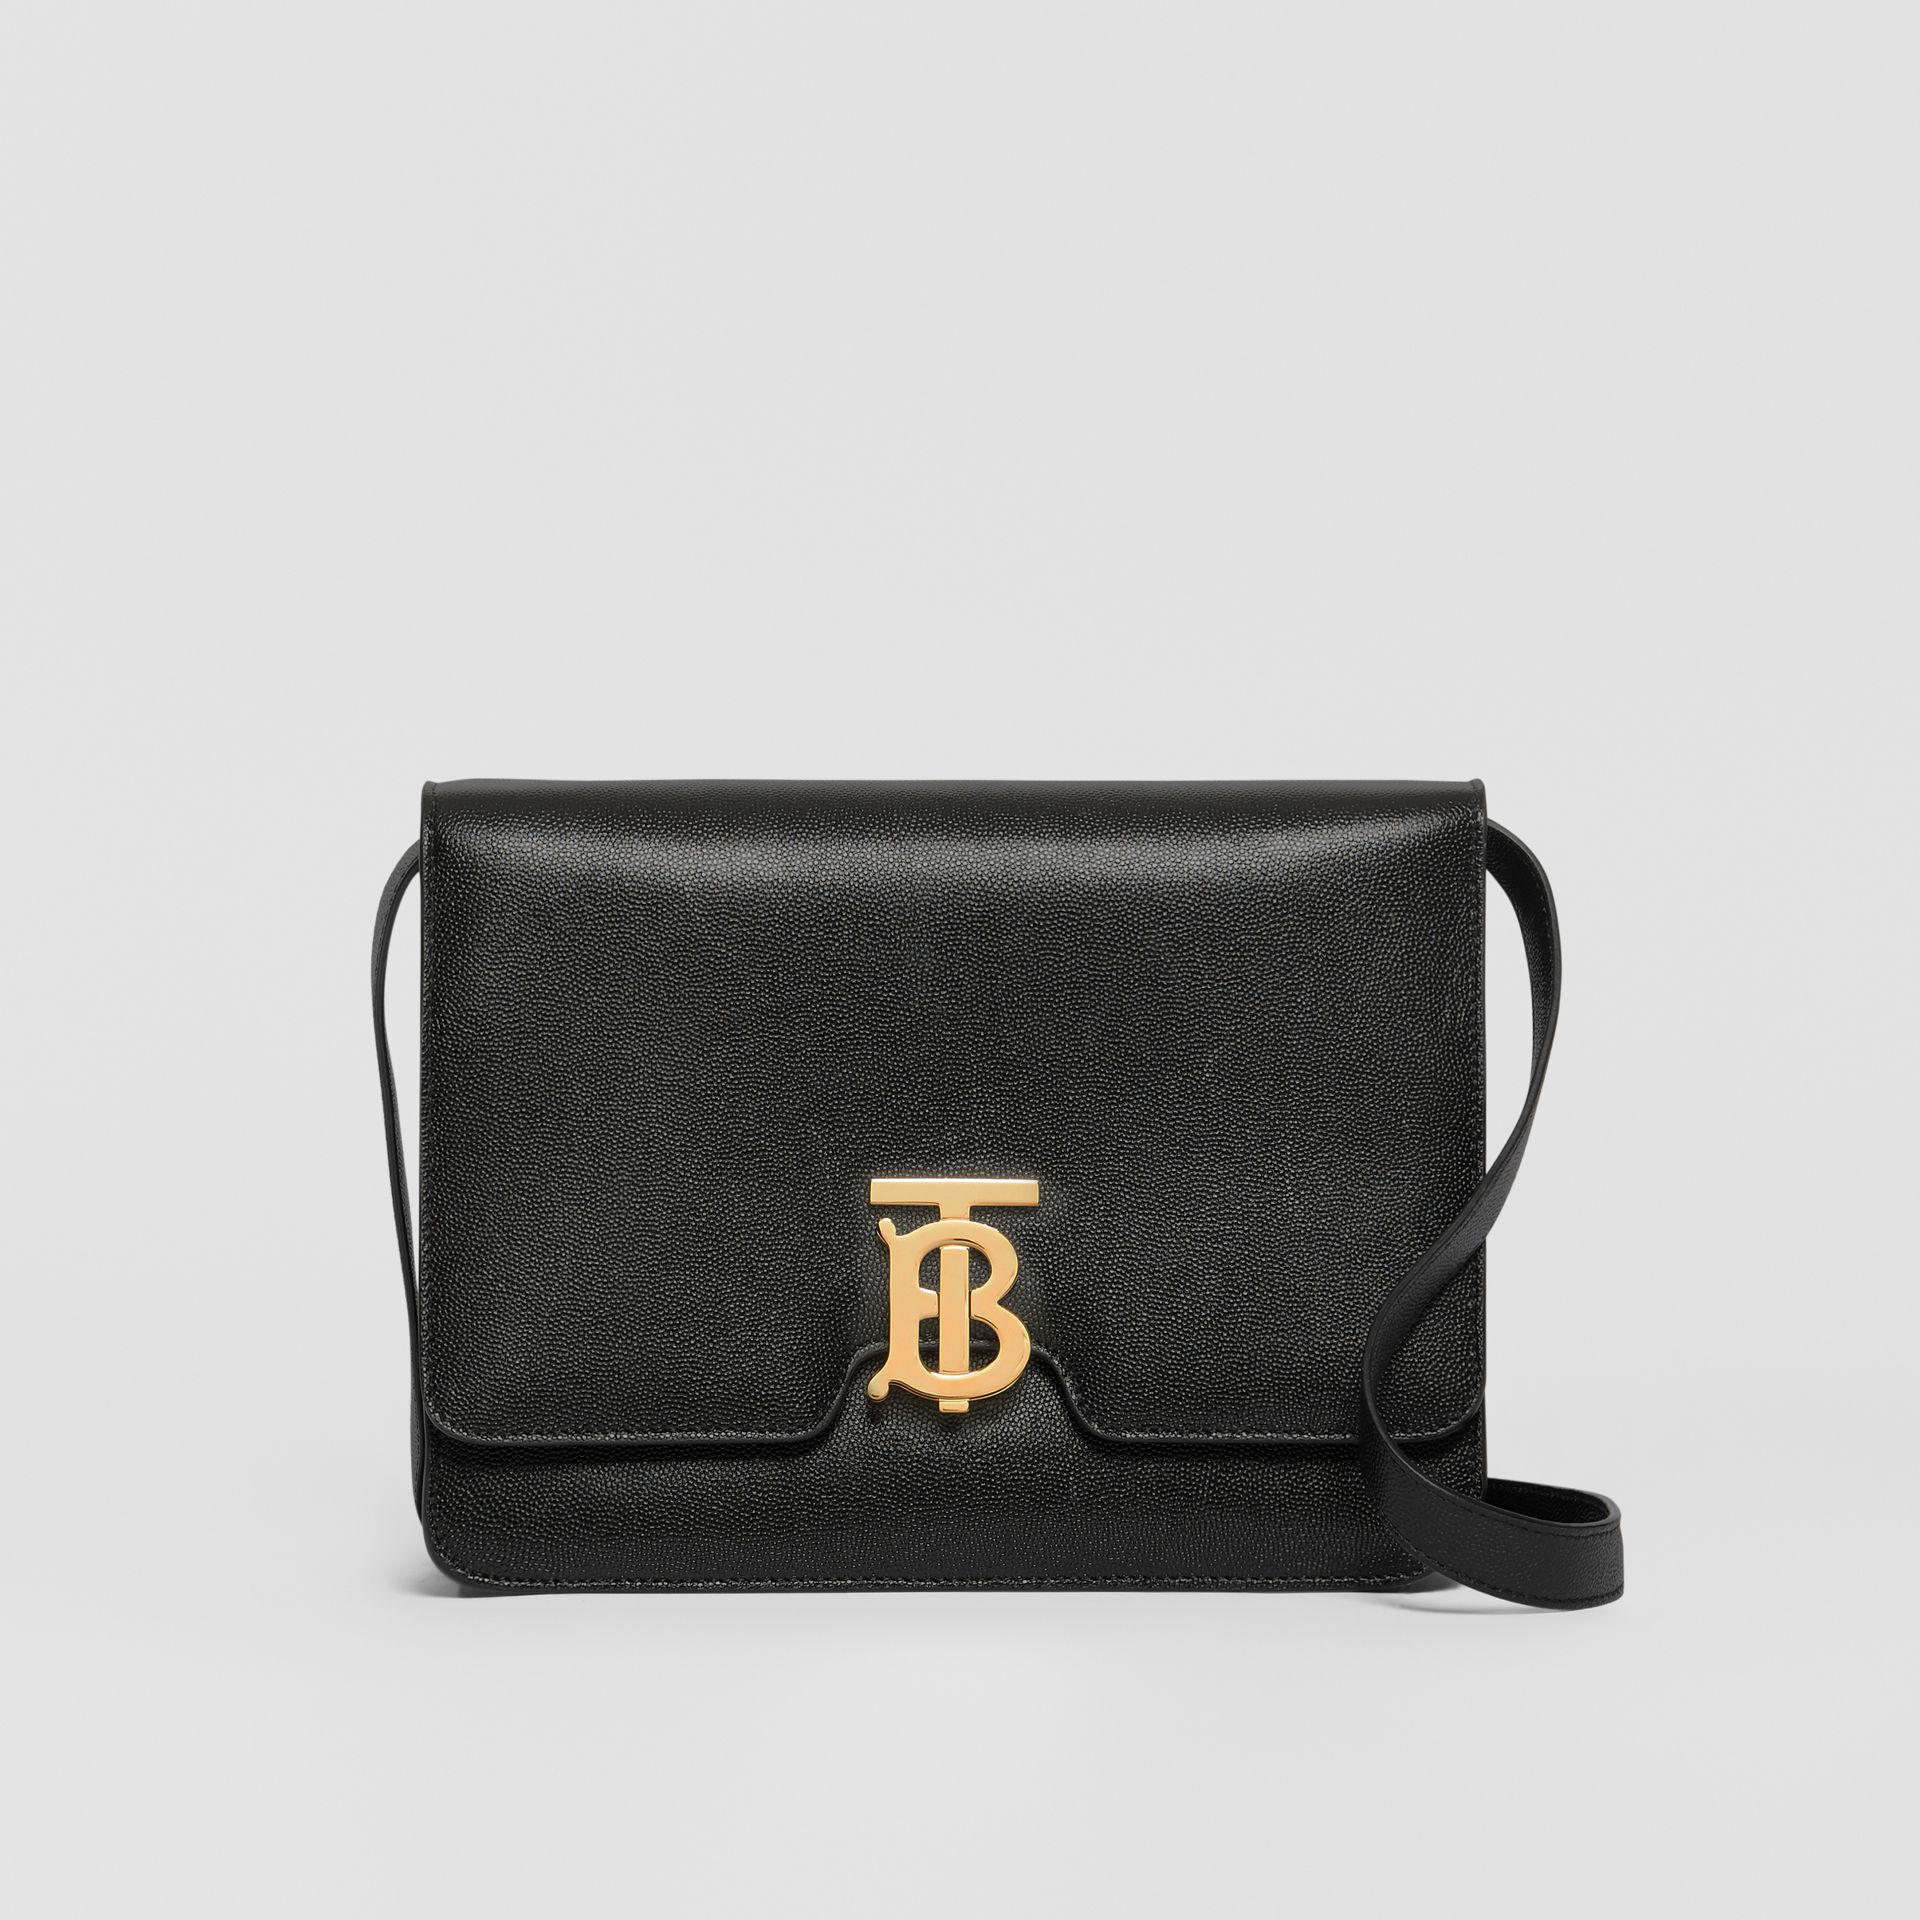 Medium Grainy Leather TB Bag in Black - Women | Burberry - gallery image 0